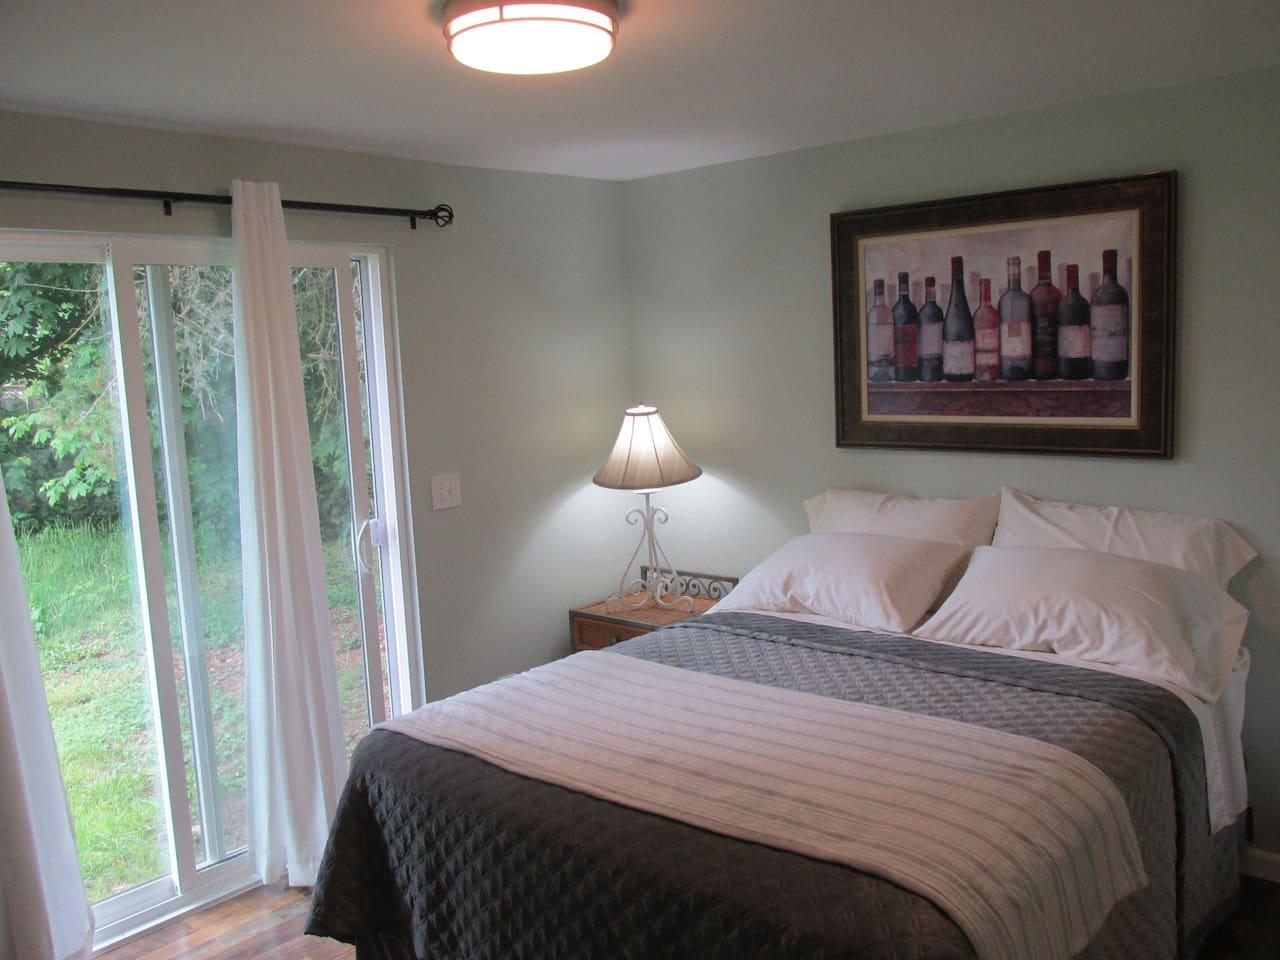 The bedroom has a Queen size bed, luxurious pillows and bedding, a mirrored closet and its own private attached bath room.